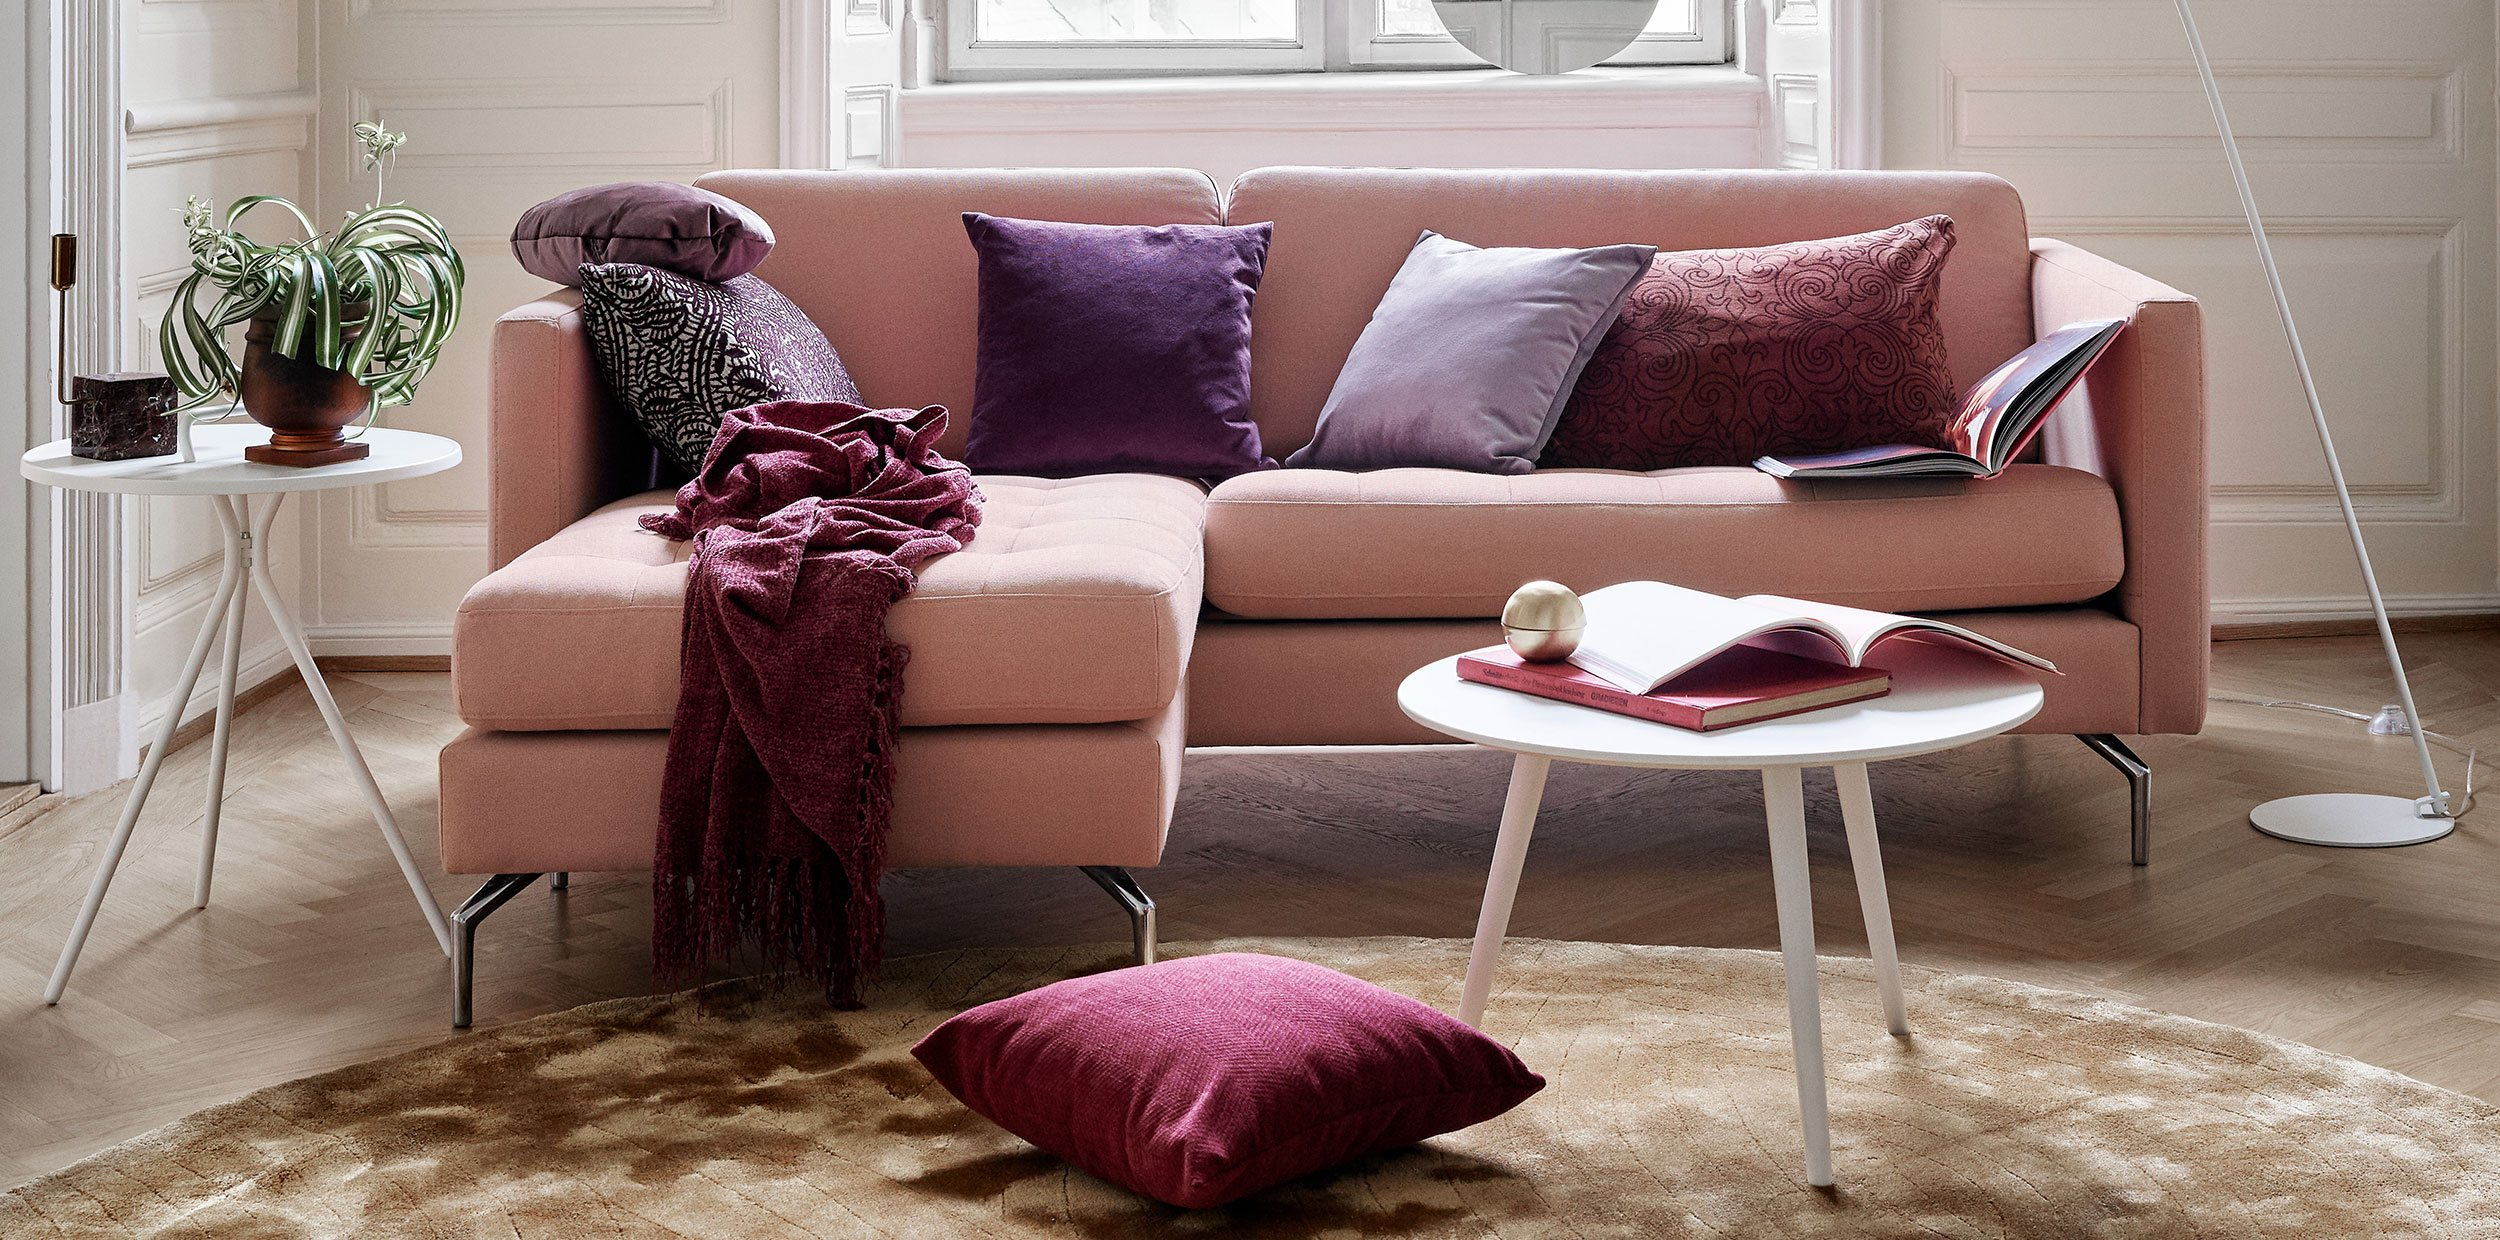 Osaka sofa in dusty red with different shades of purple cushions and white coffee table